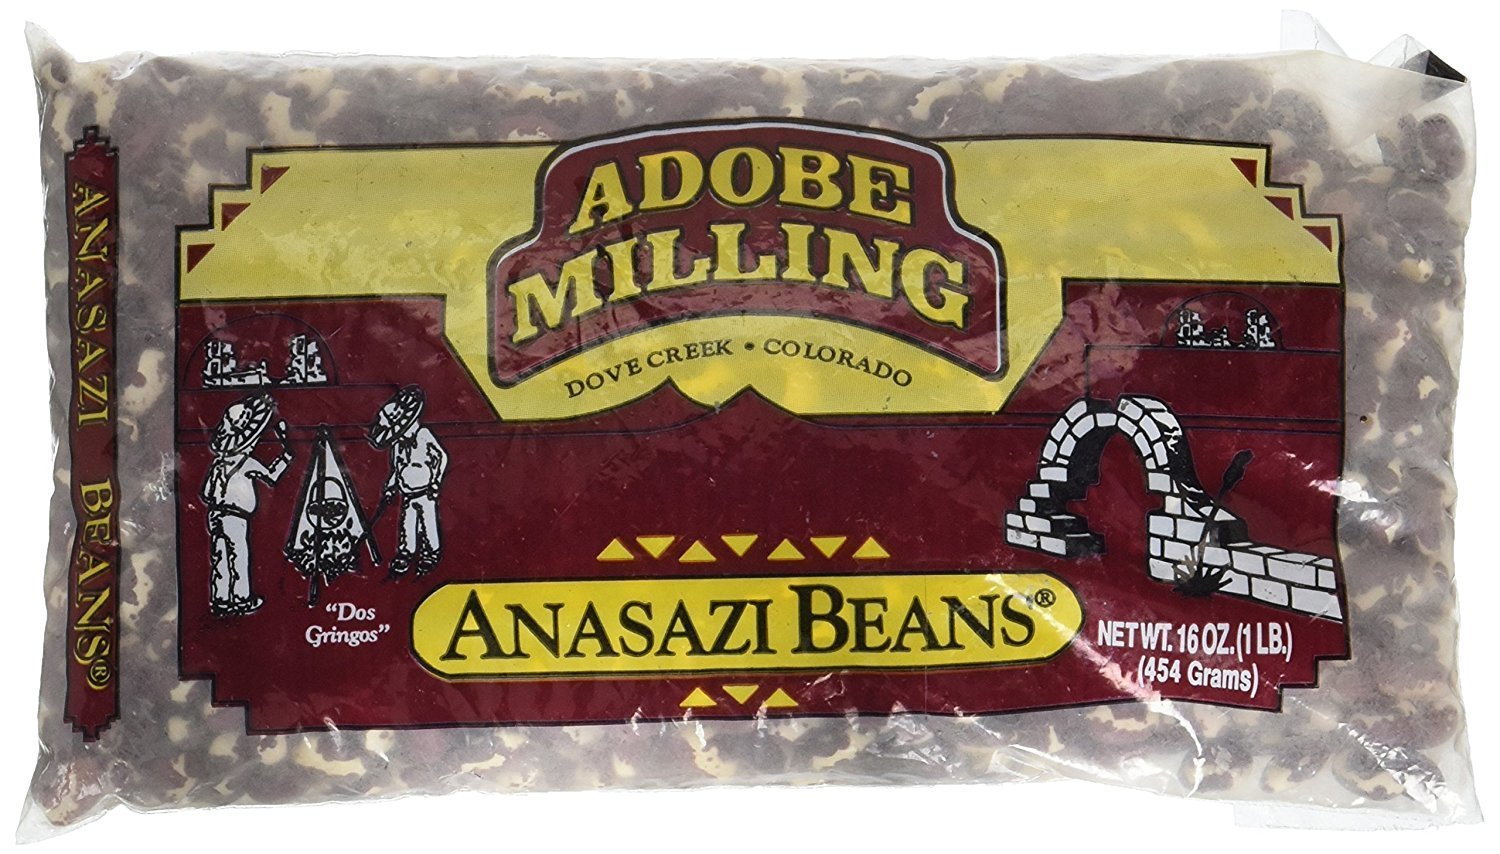 Adobe Milling Dried Anasazi Beans 16oz Bag (Pack of 6) by Adobe Milling